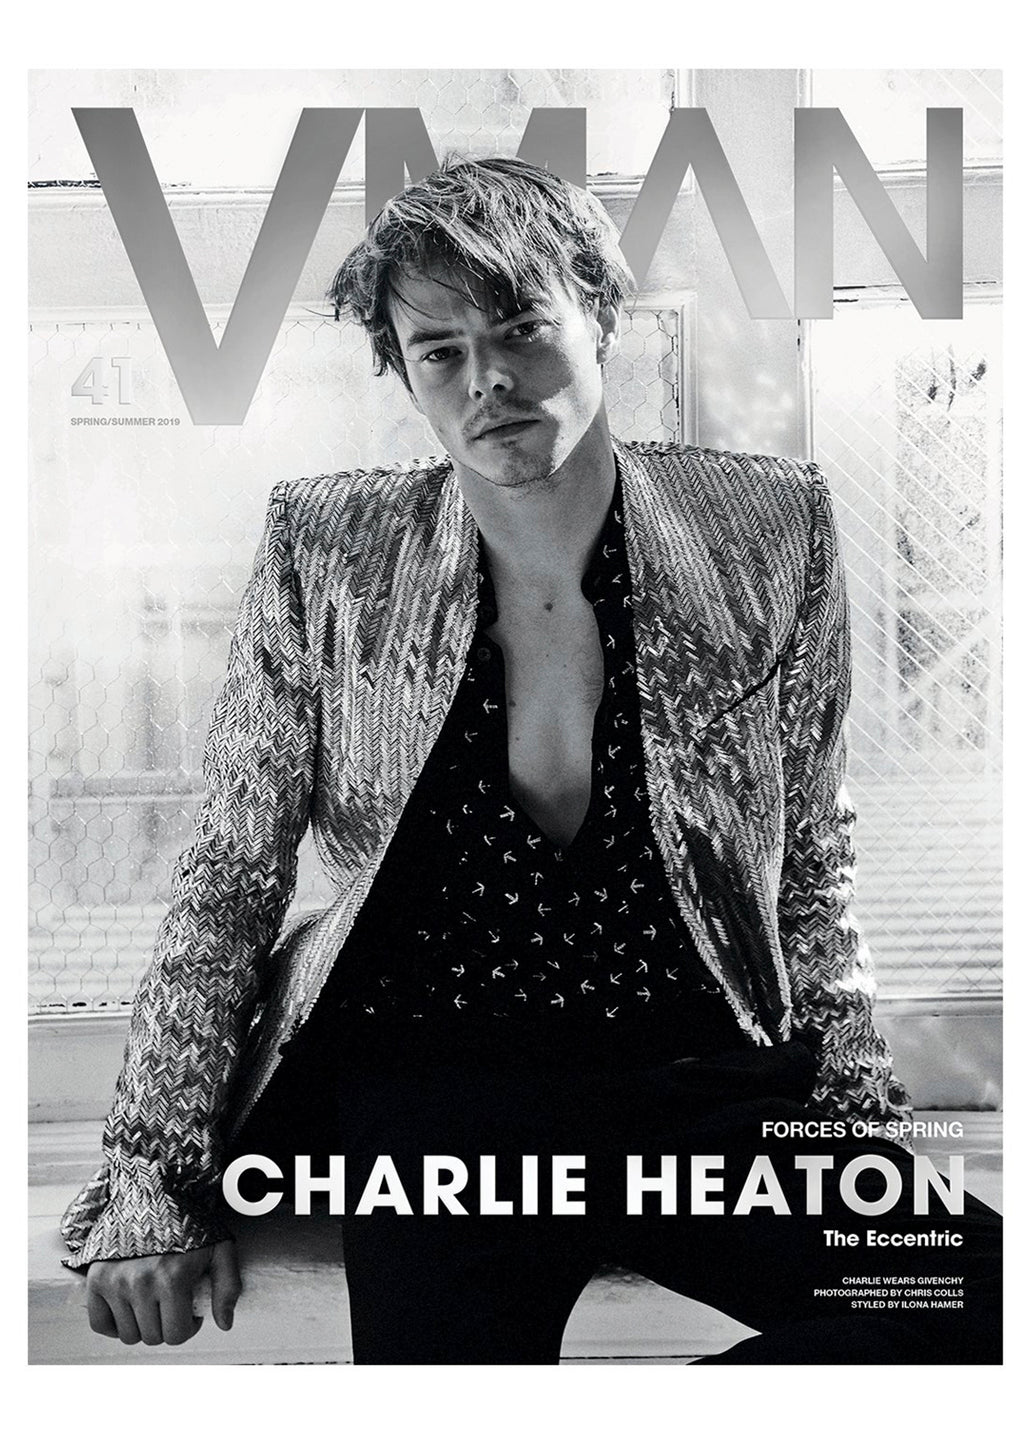 VMAN 41: FORCES OF SPRING CHARLIE HEATON